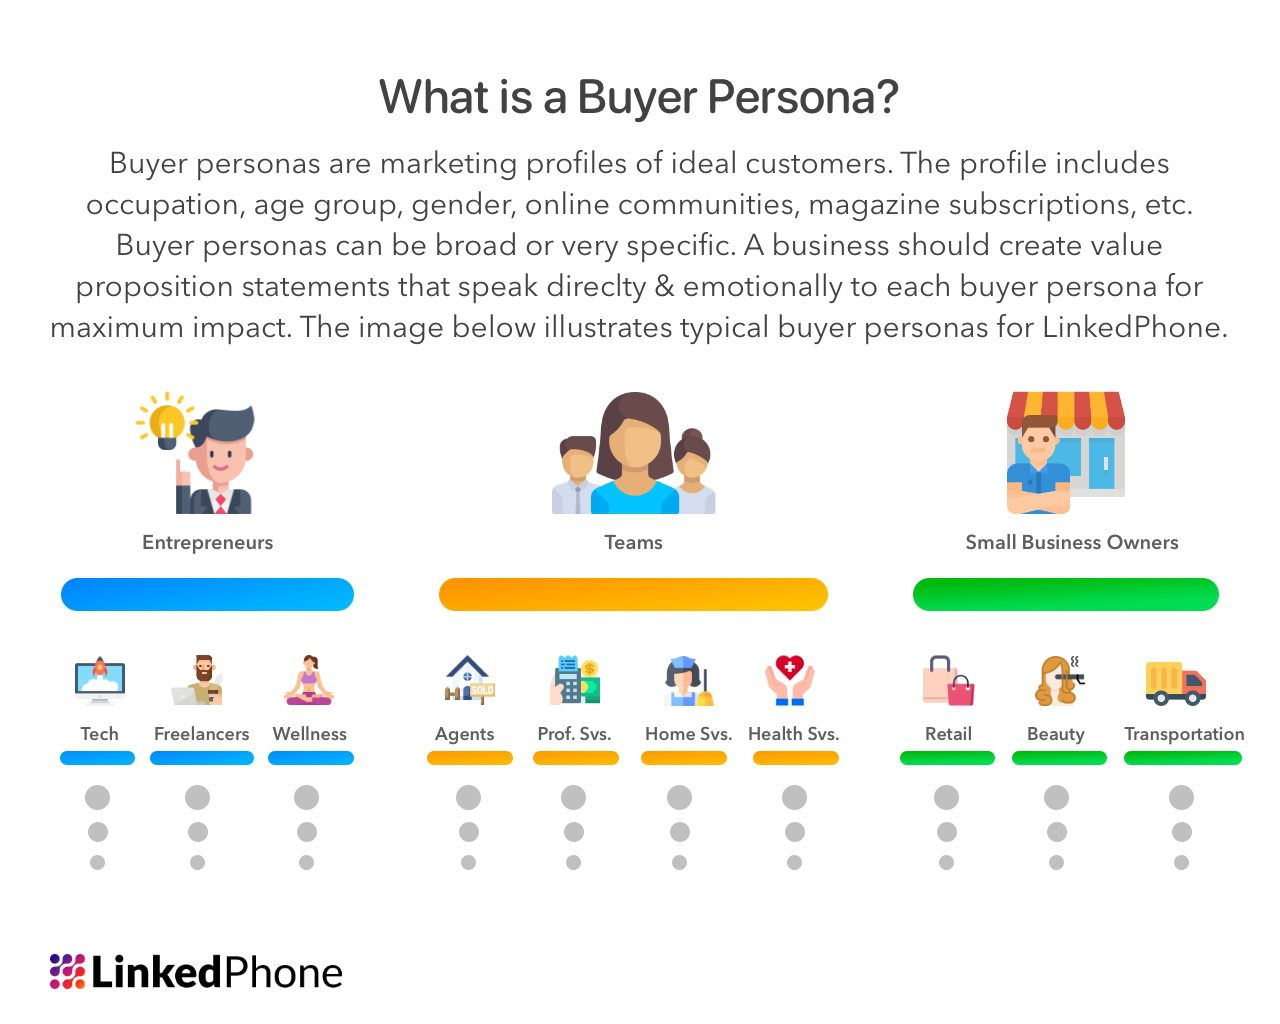 What is a Buyer Persona - Marketing and Value Proposition